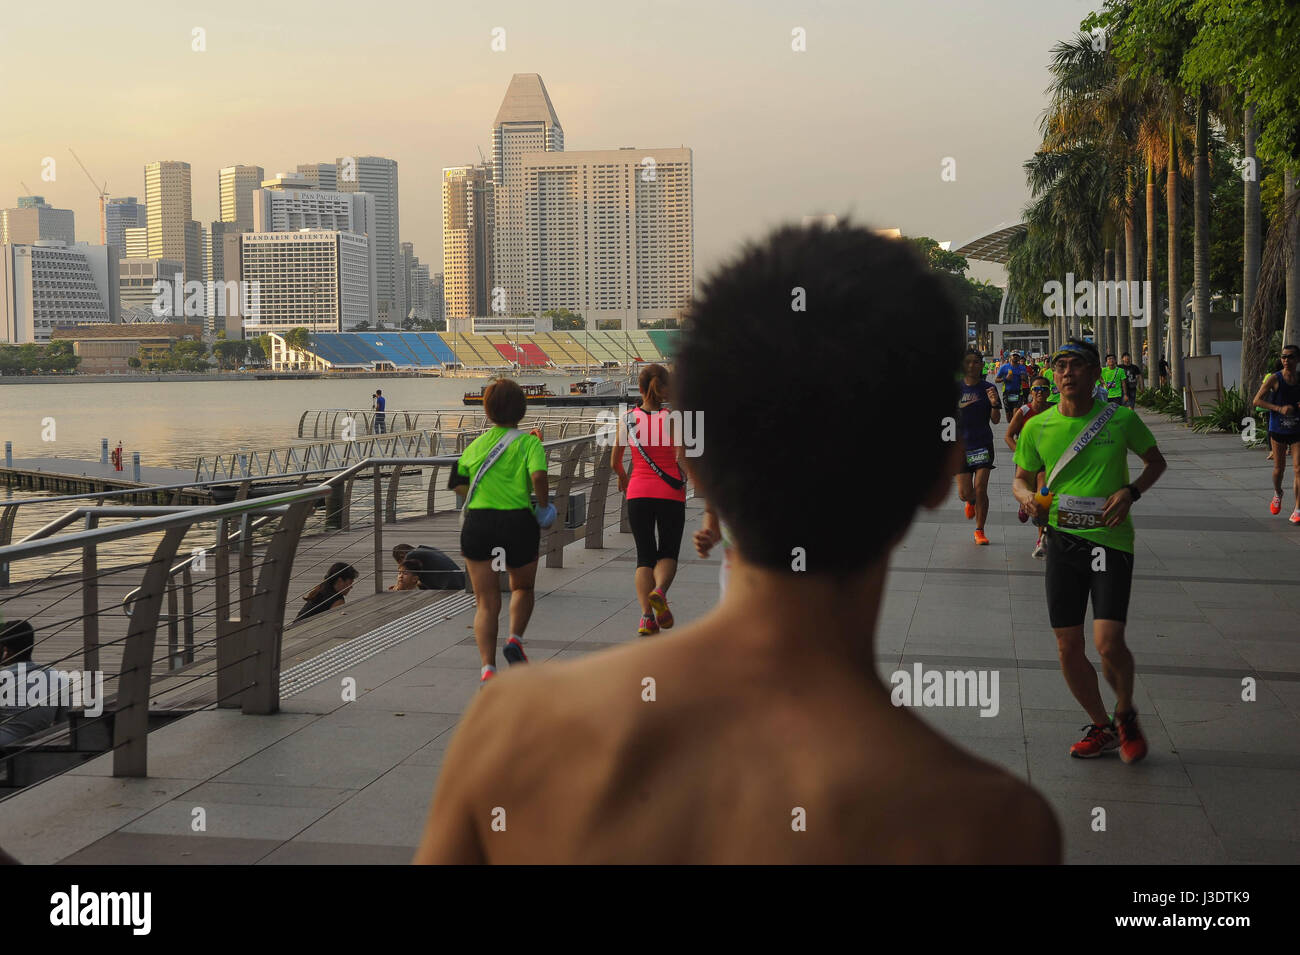 SINGAPORE. 2016. Running event at Marina Bay - Stock Image